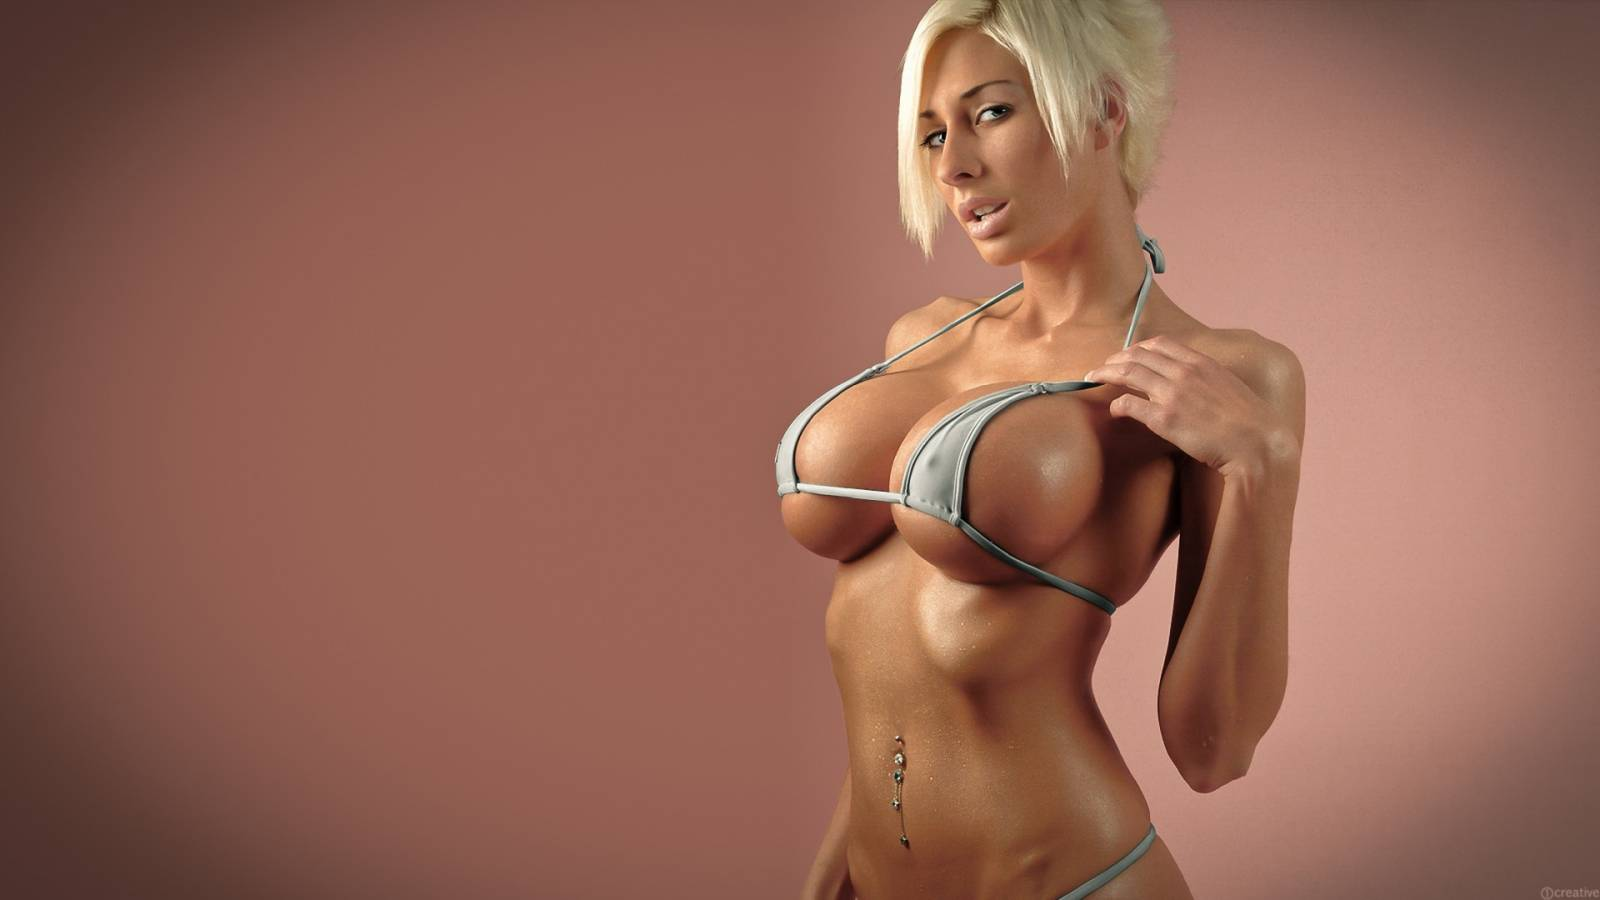 Big boobs walpaper in 3d effected sexy photos